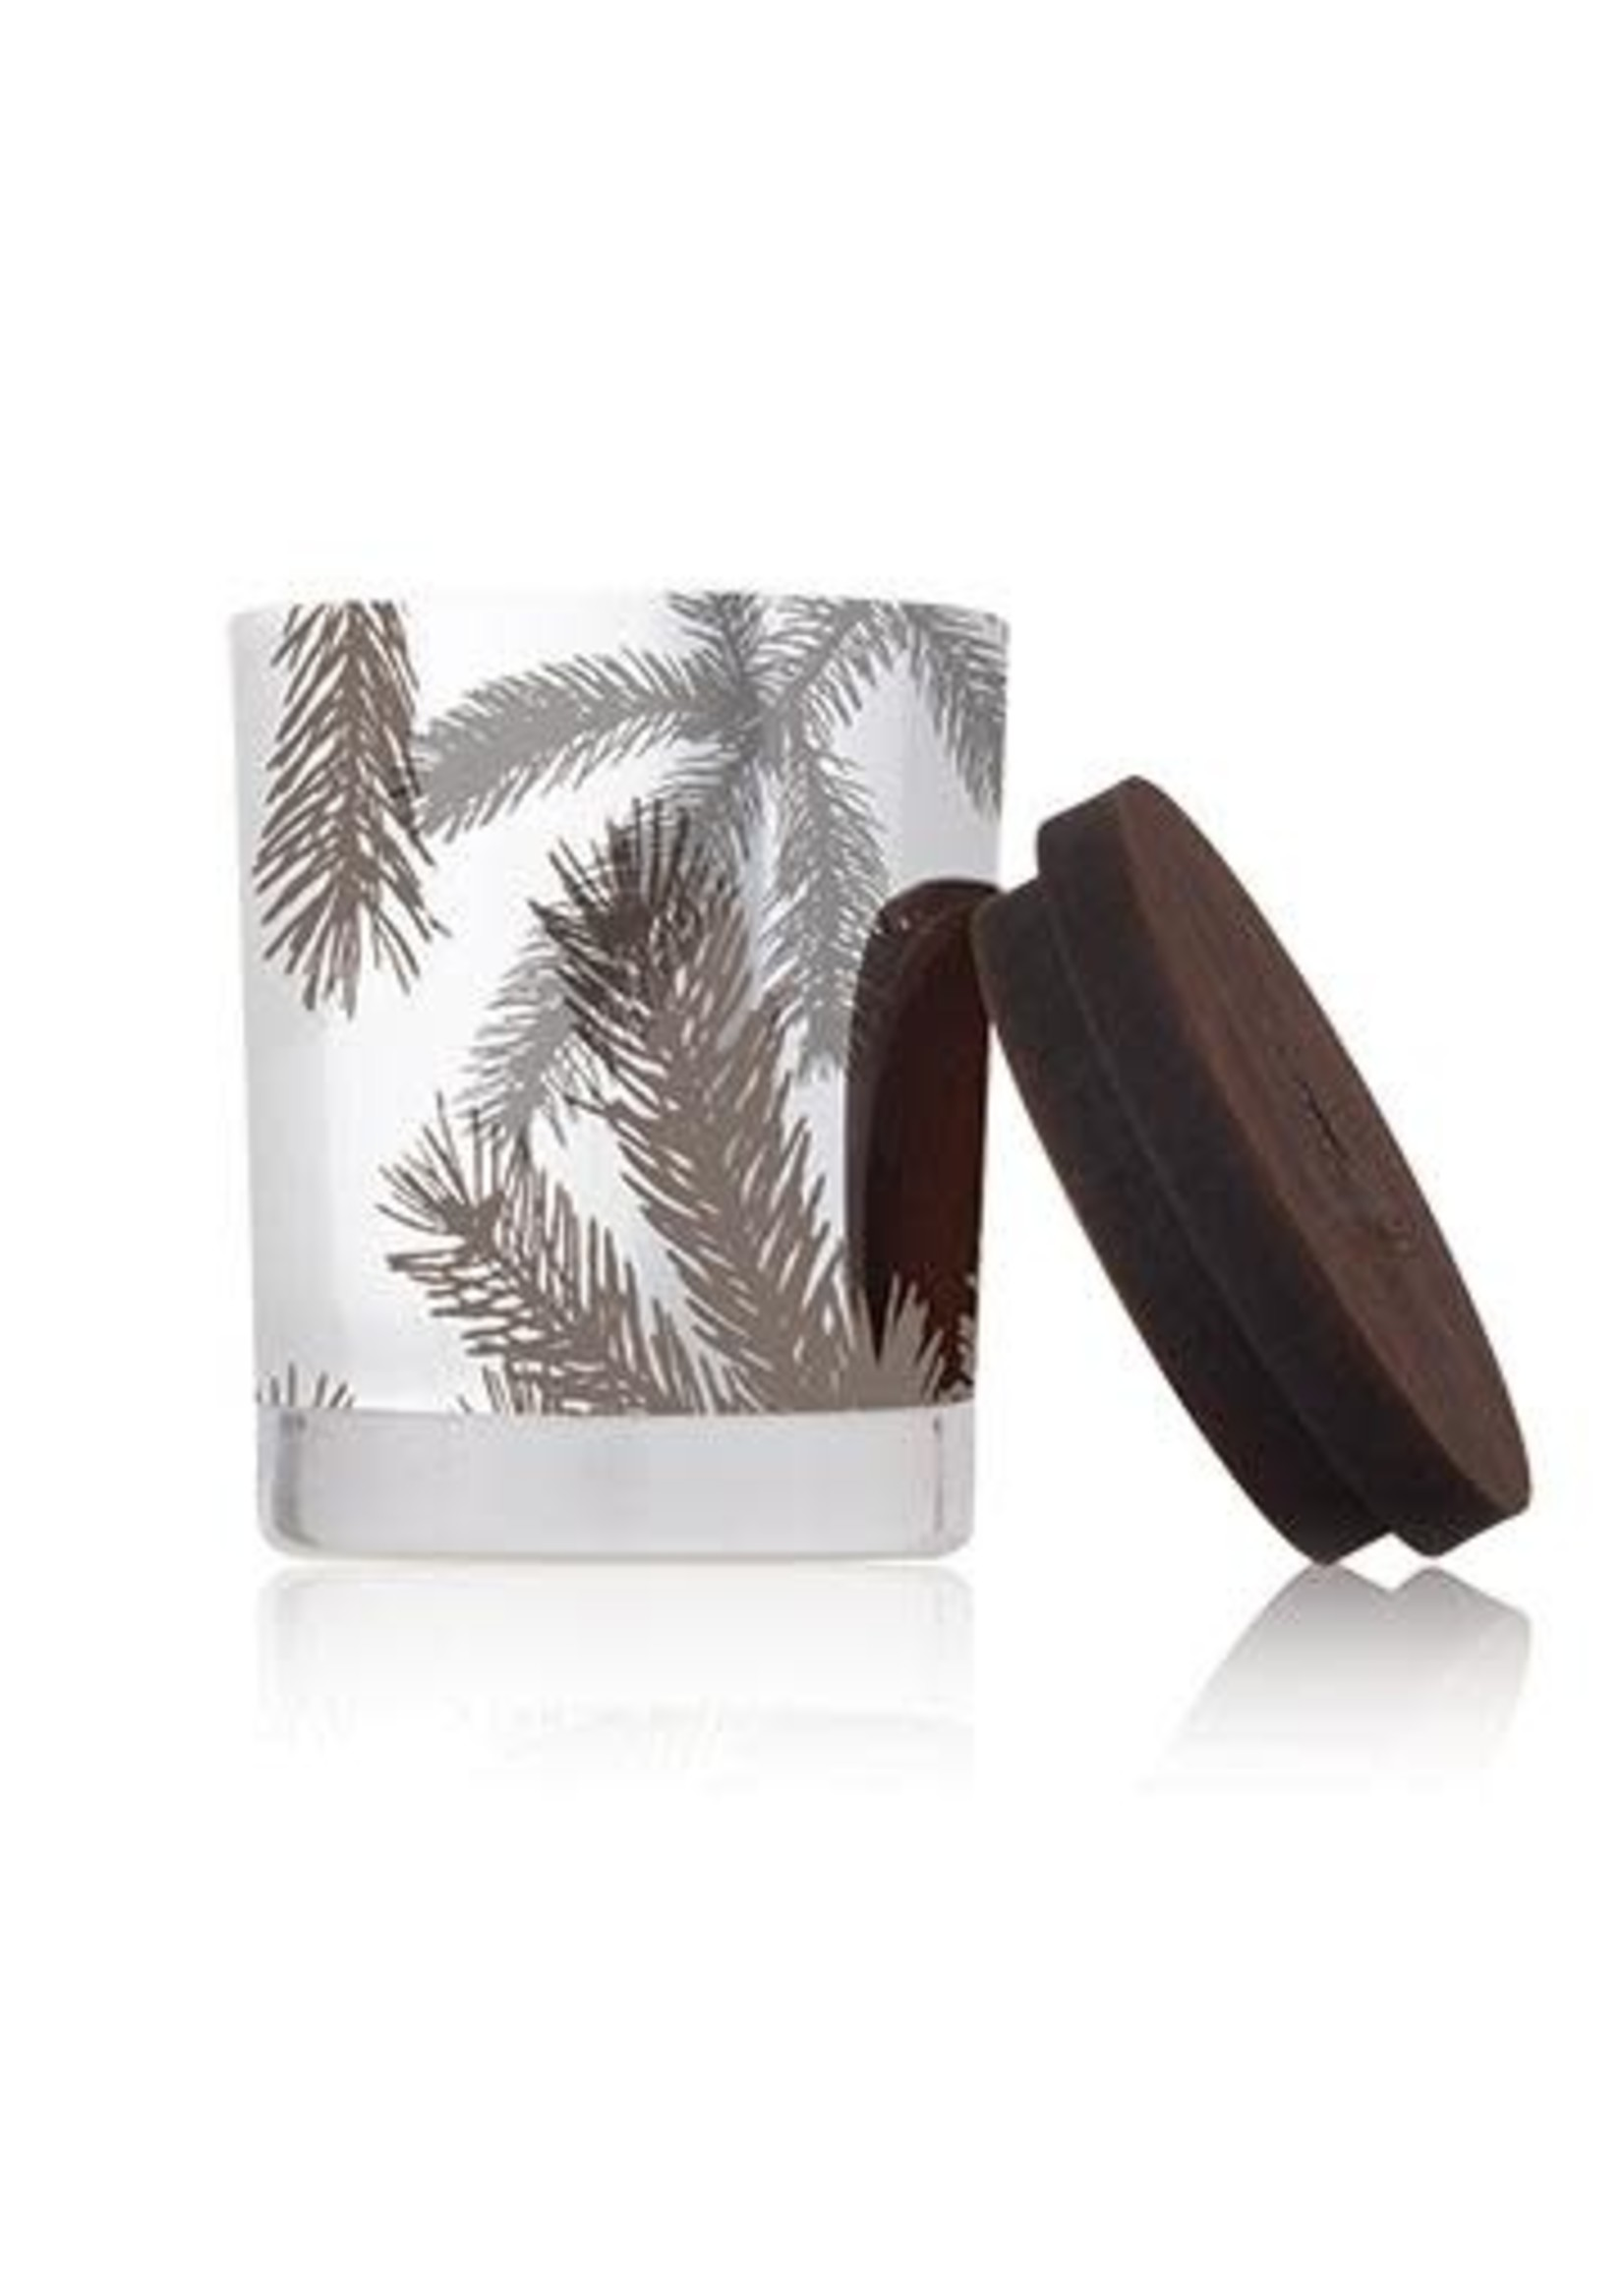 Thymes Frasier Fir Small Statement Candle - PIne Needle